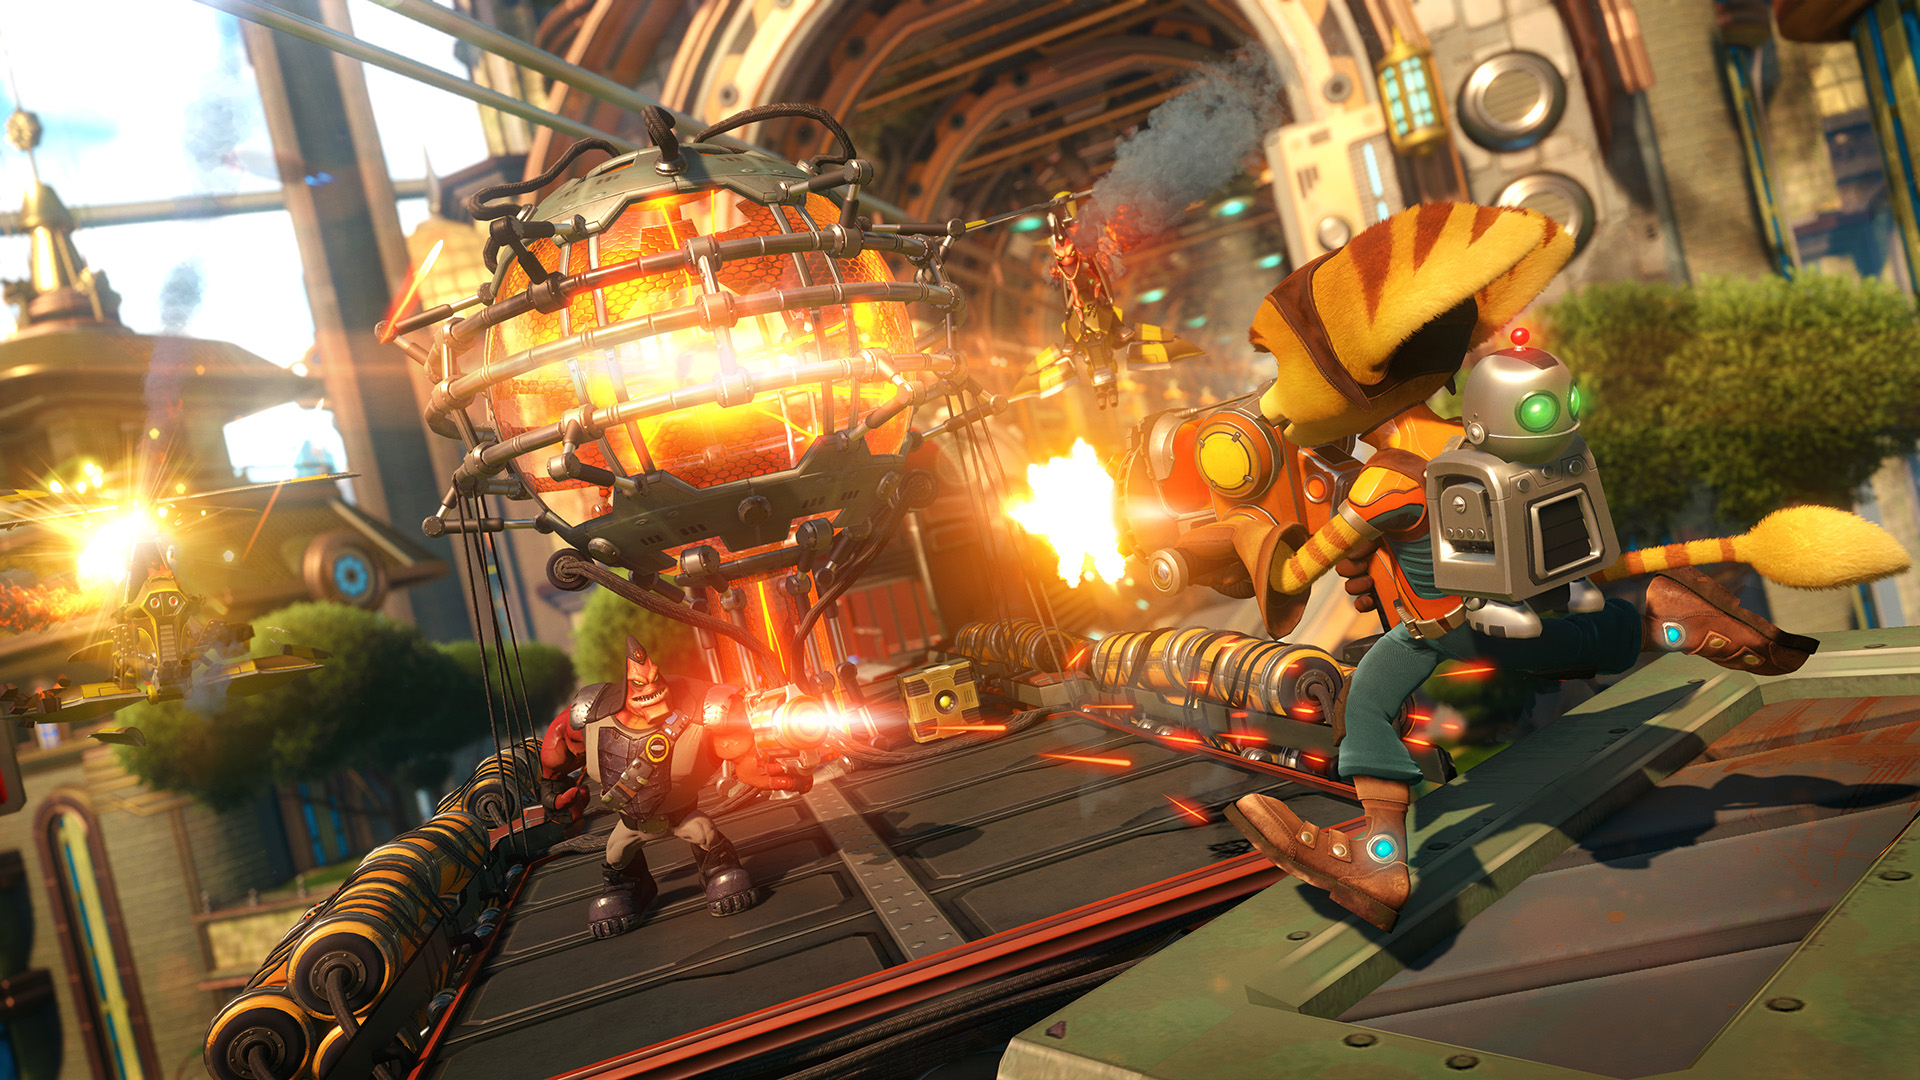 Ratchet & Clank Is A Love Letter To A Treasured Franchise RCPS4 1 met train